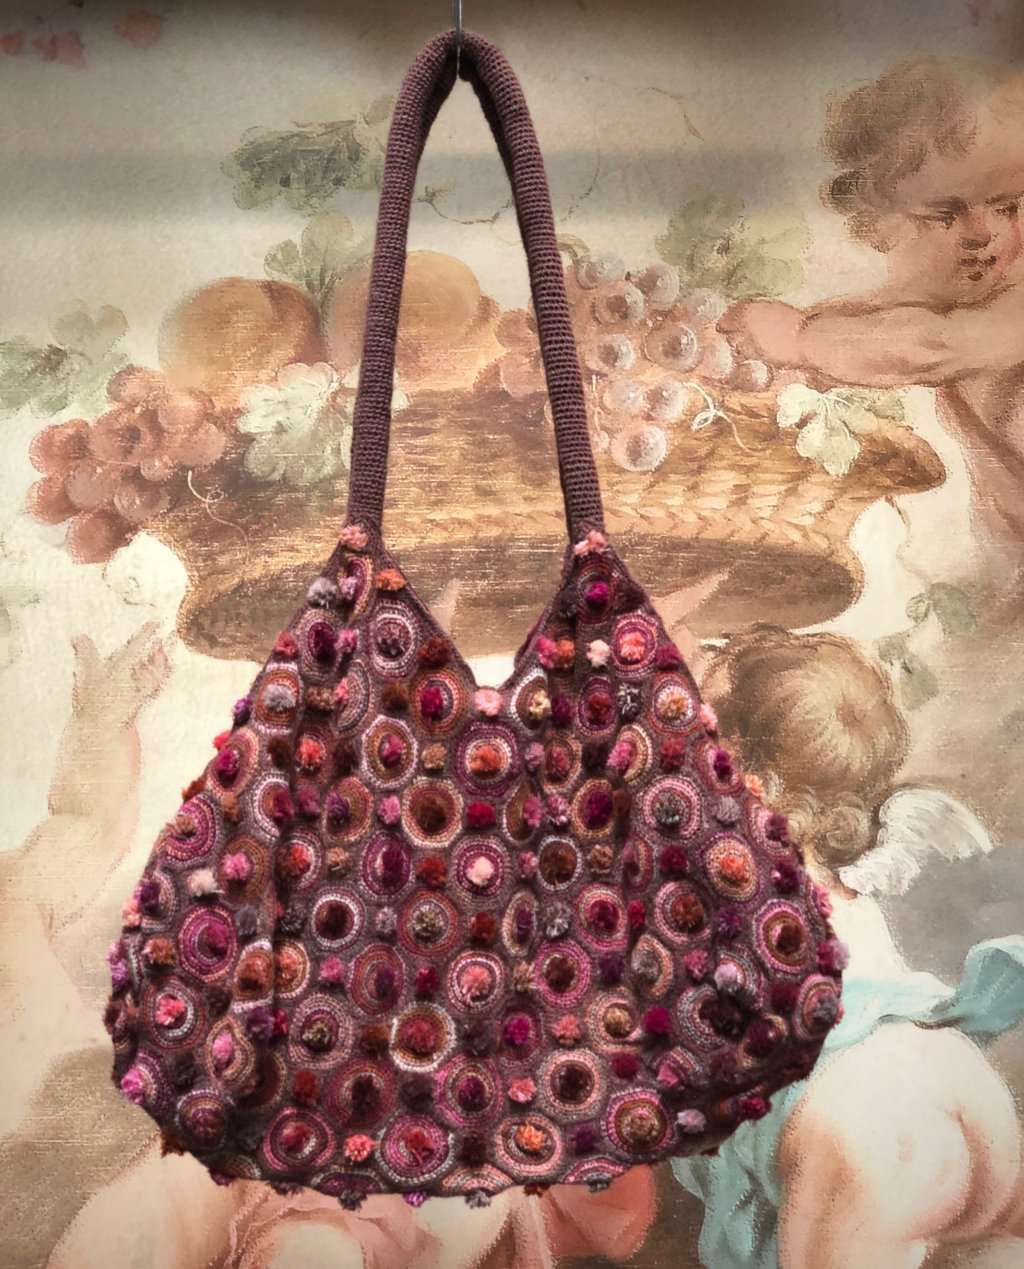 Sophie Digard - Crocheted Shoulder Bag - Medium - Slouchy Style